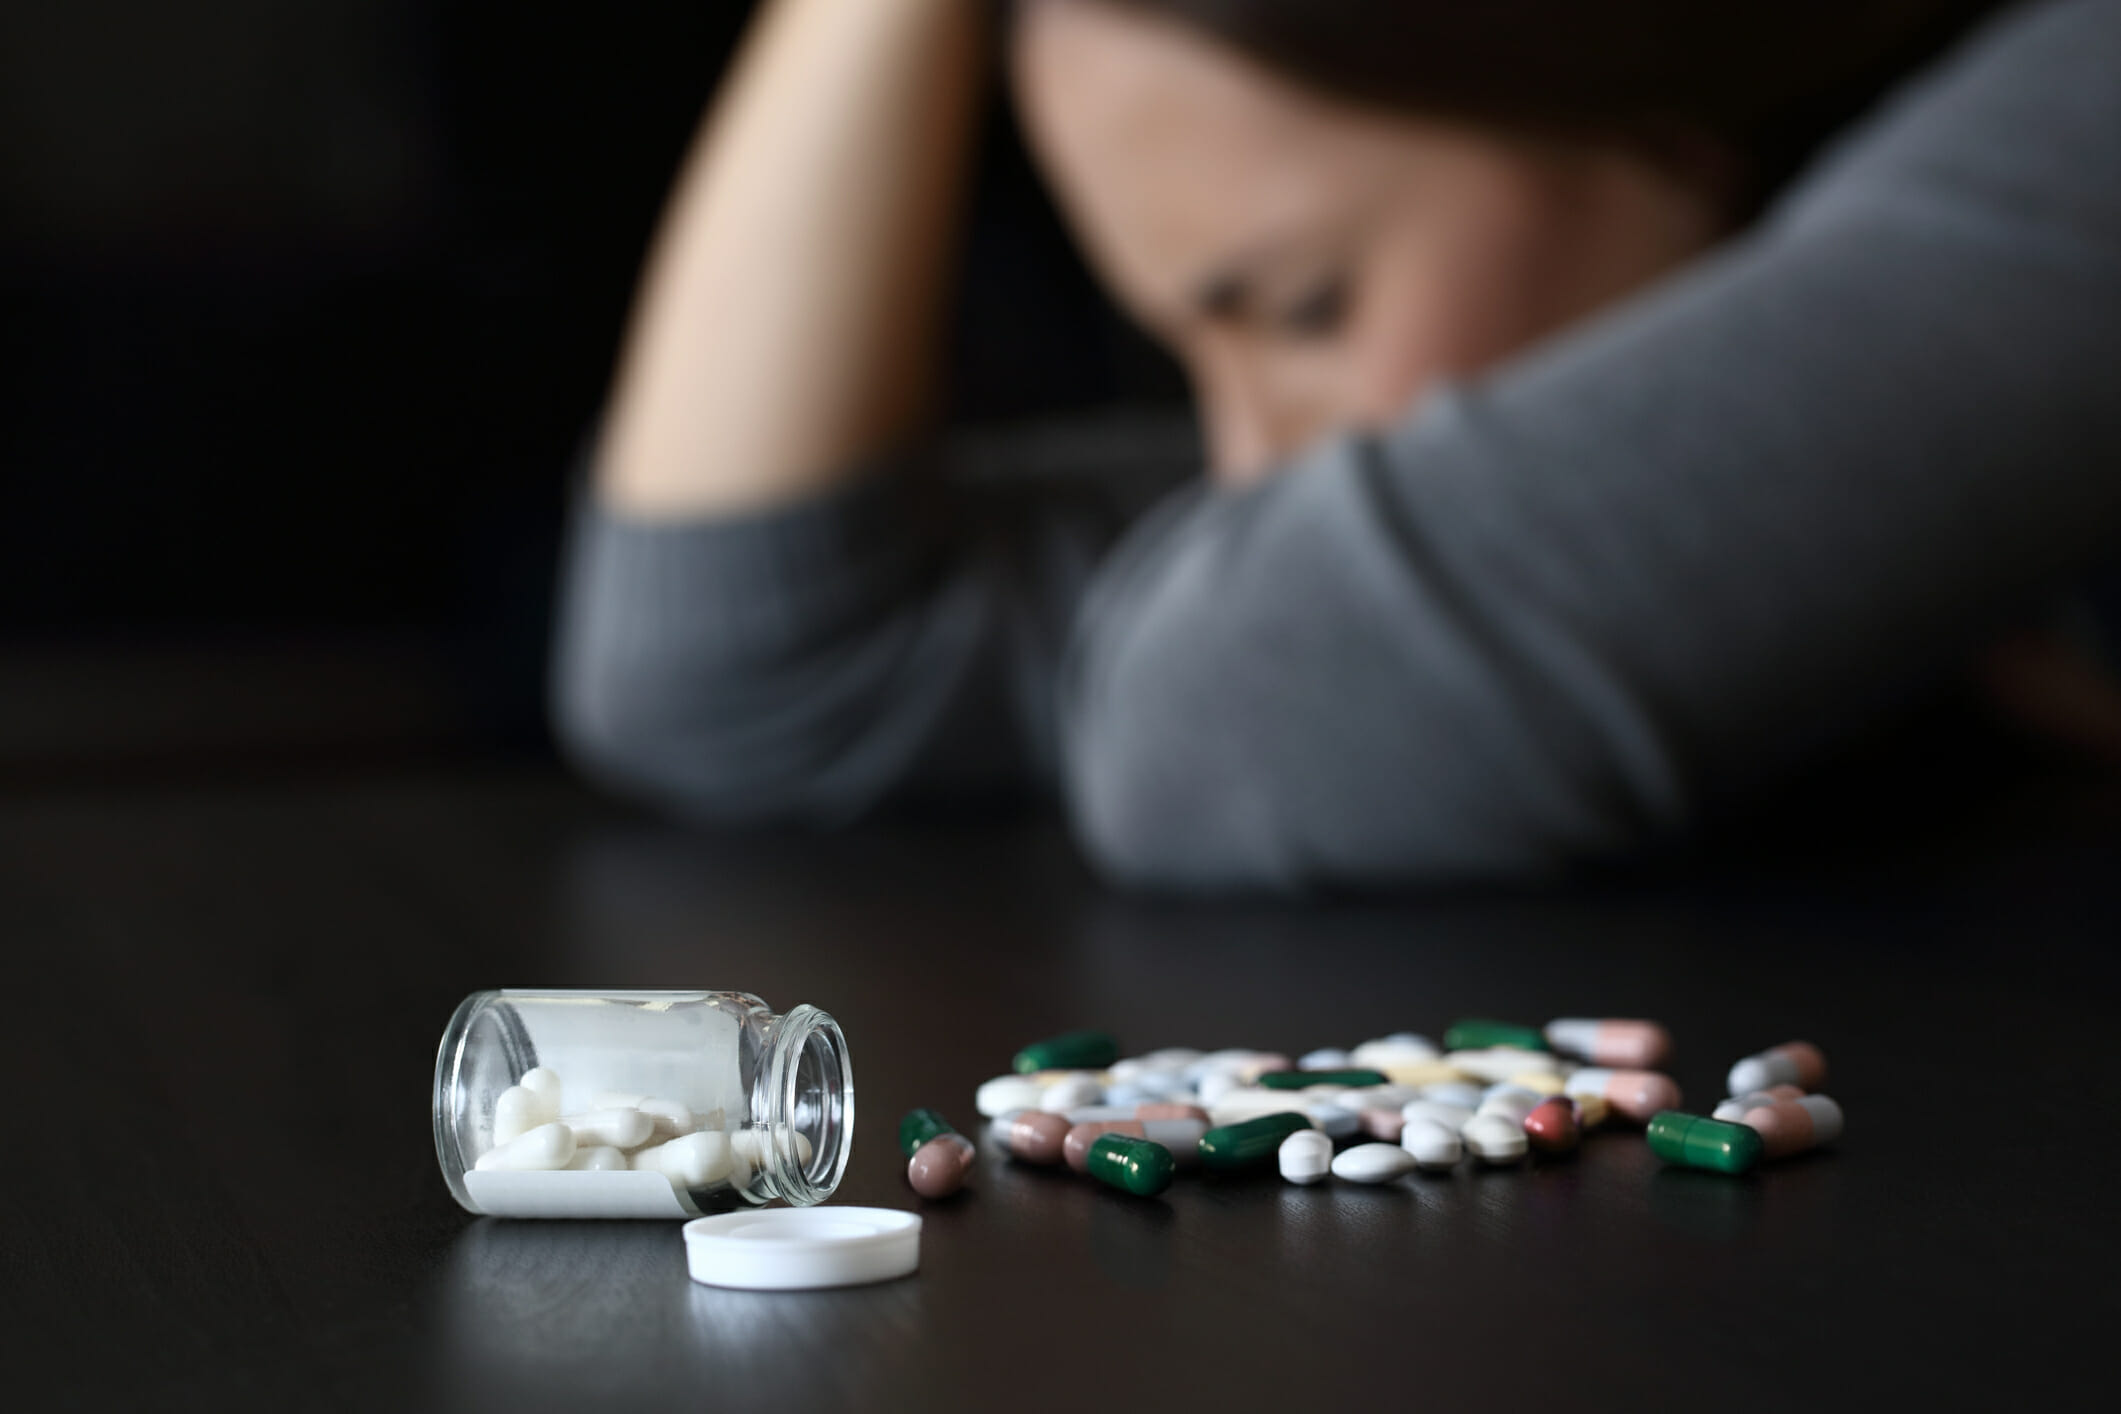 Treating the Co-Occurrence of Mental Health and Substance Abuse